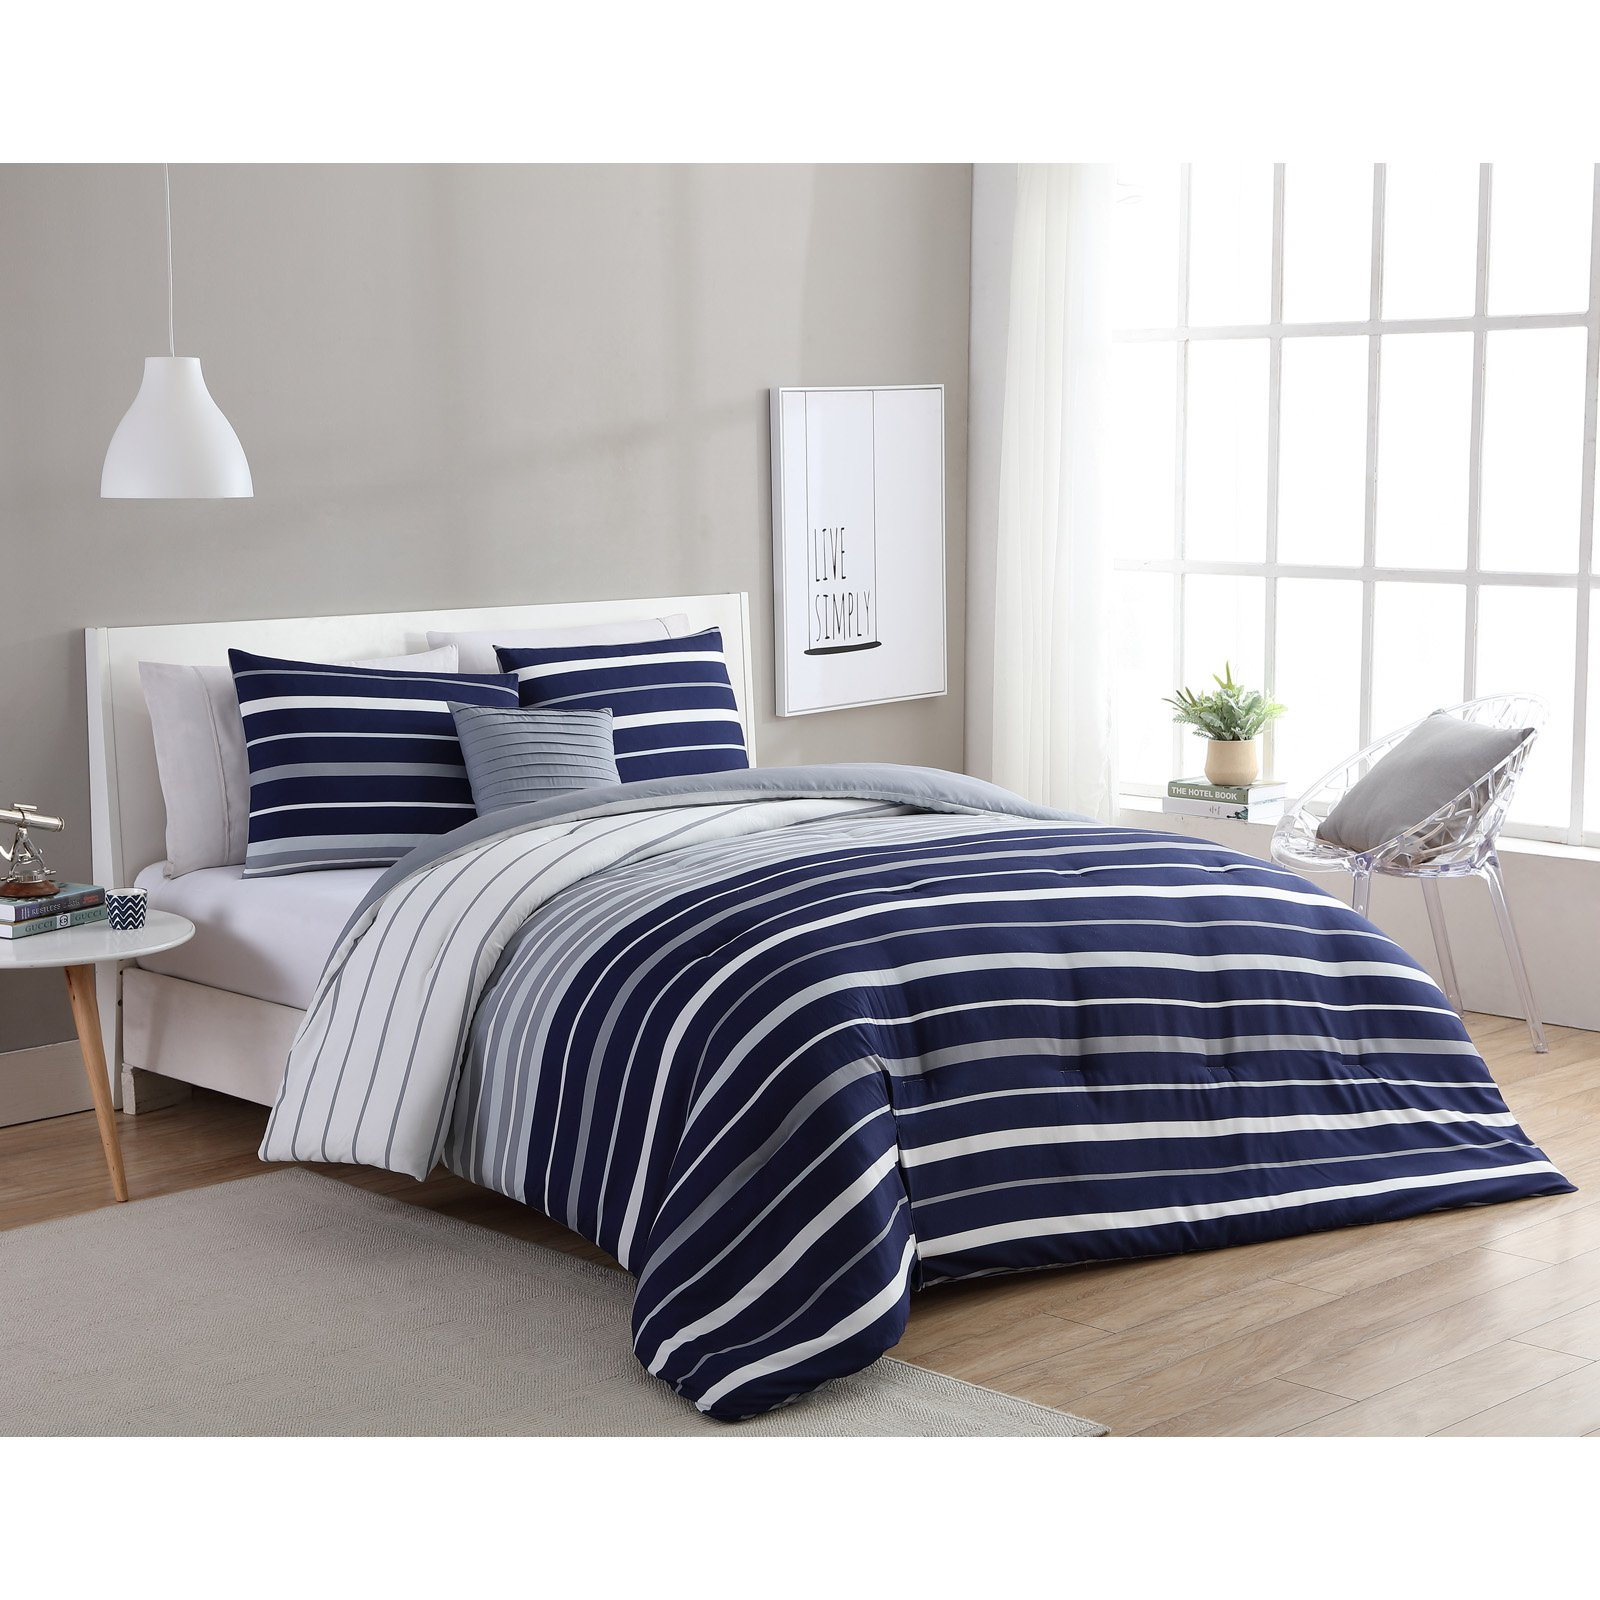 VCNY Home Navy/White Preston Stripe 3-Piece Comforter Bedding Set